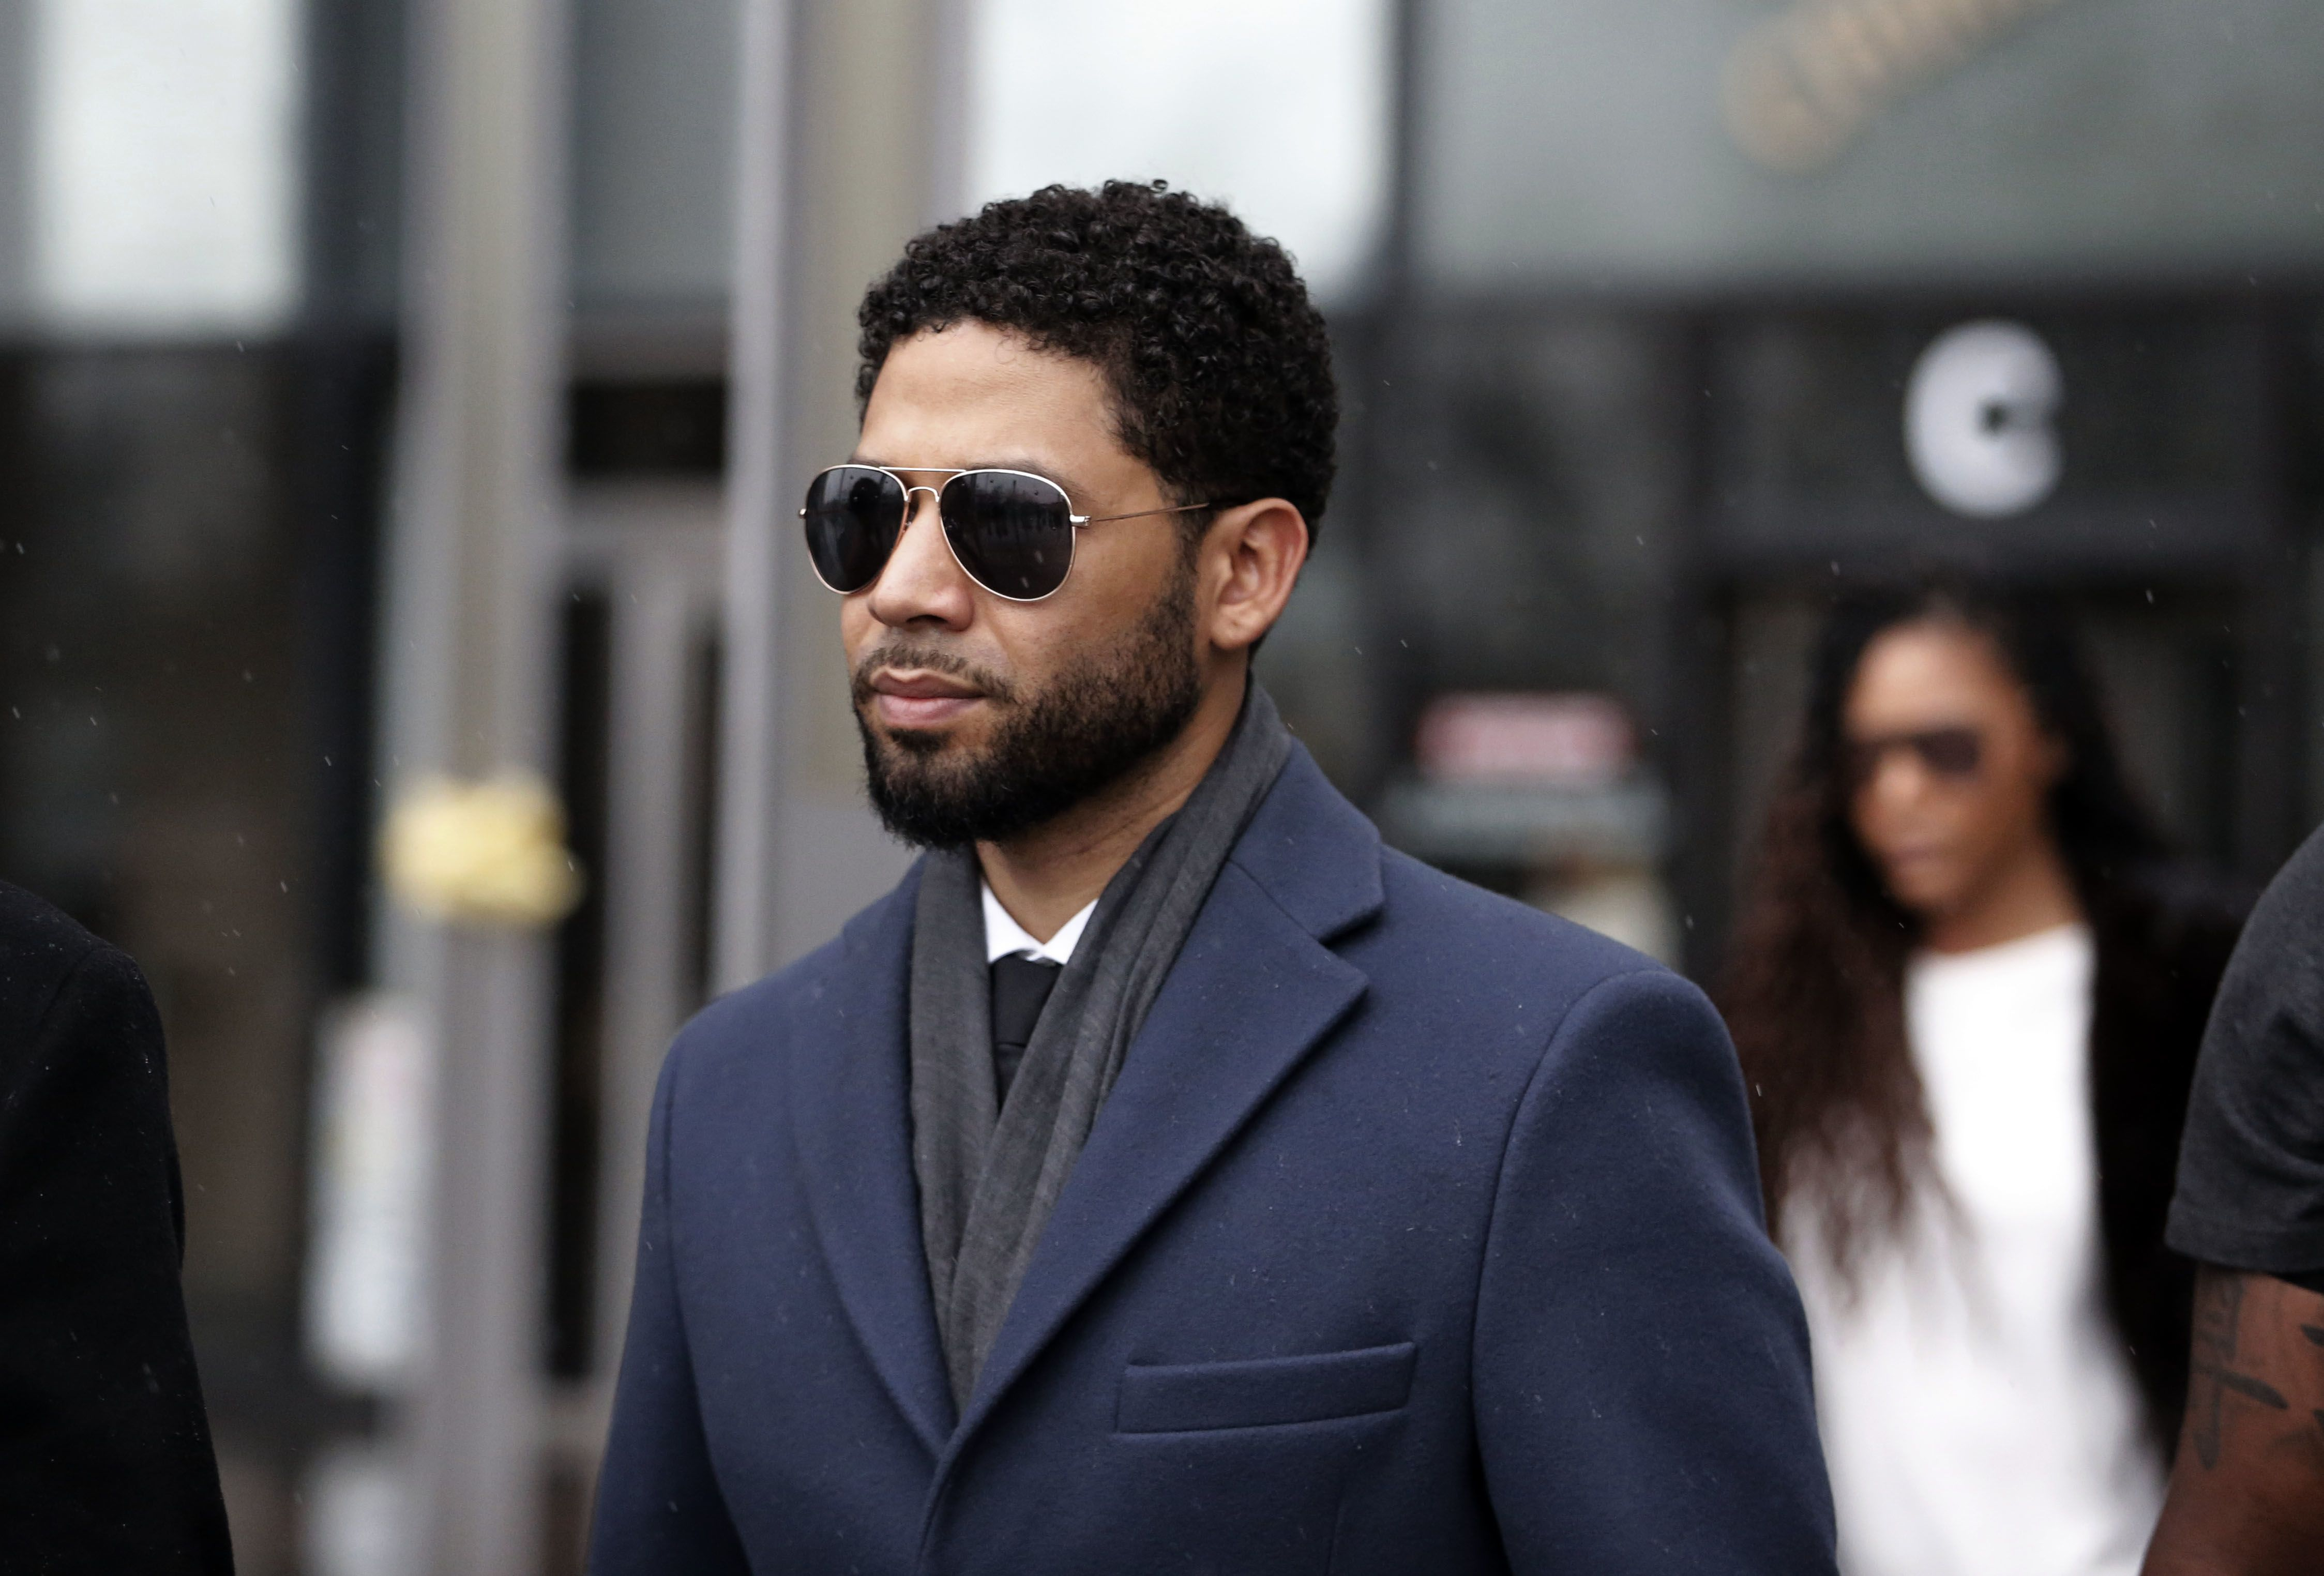 Jussie Smollett not expected to return to Fox's 'Empire'